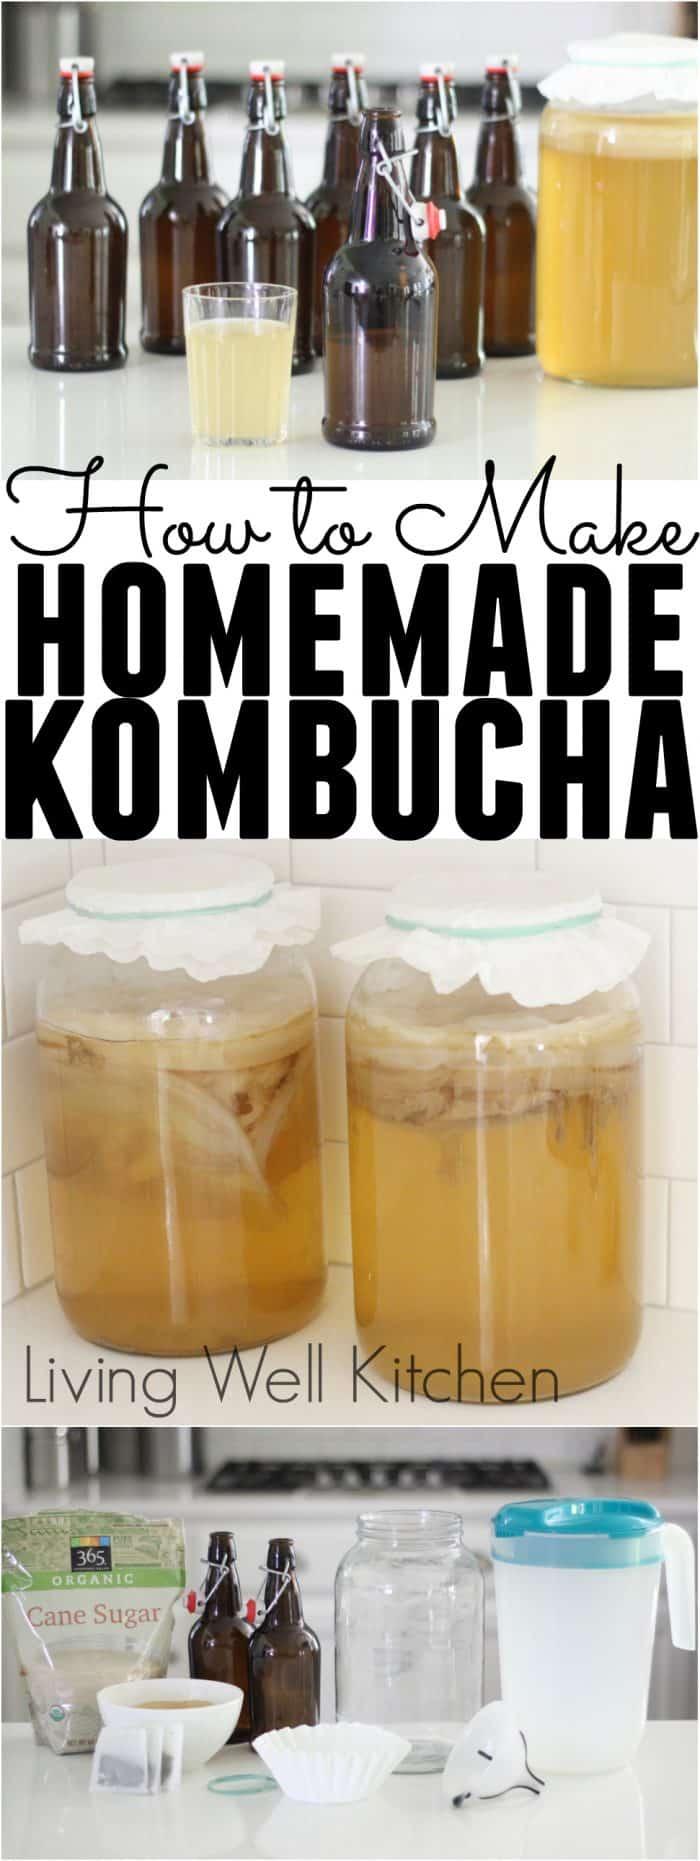 Learn how to make your own homemade kombucha, a bubbly fermented beverage, with a video and specific & detailed instructions from start to finish from @memeinge